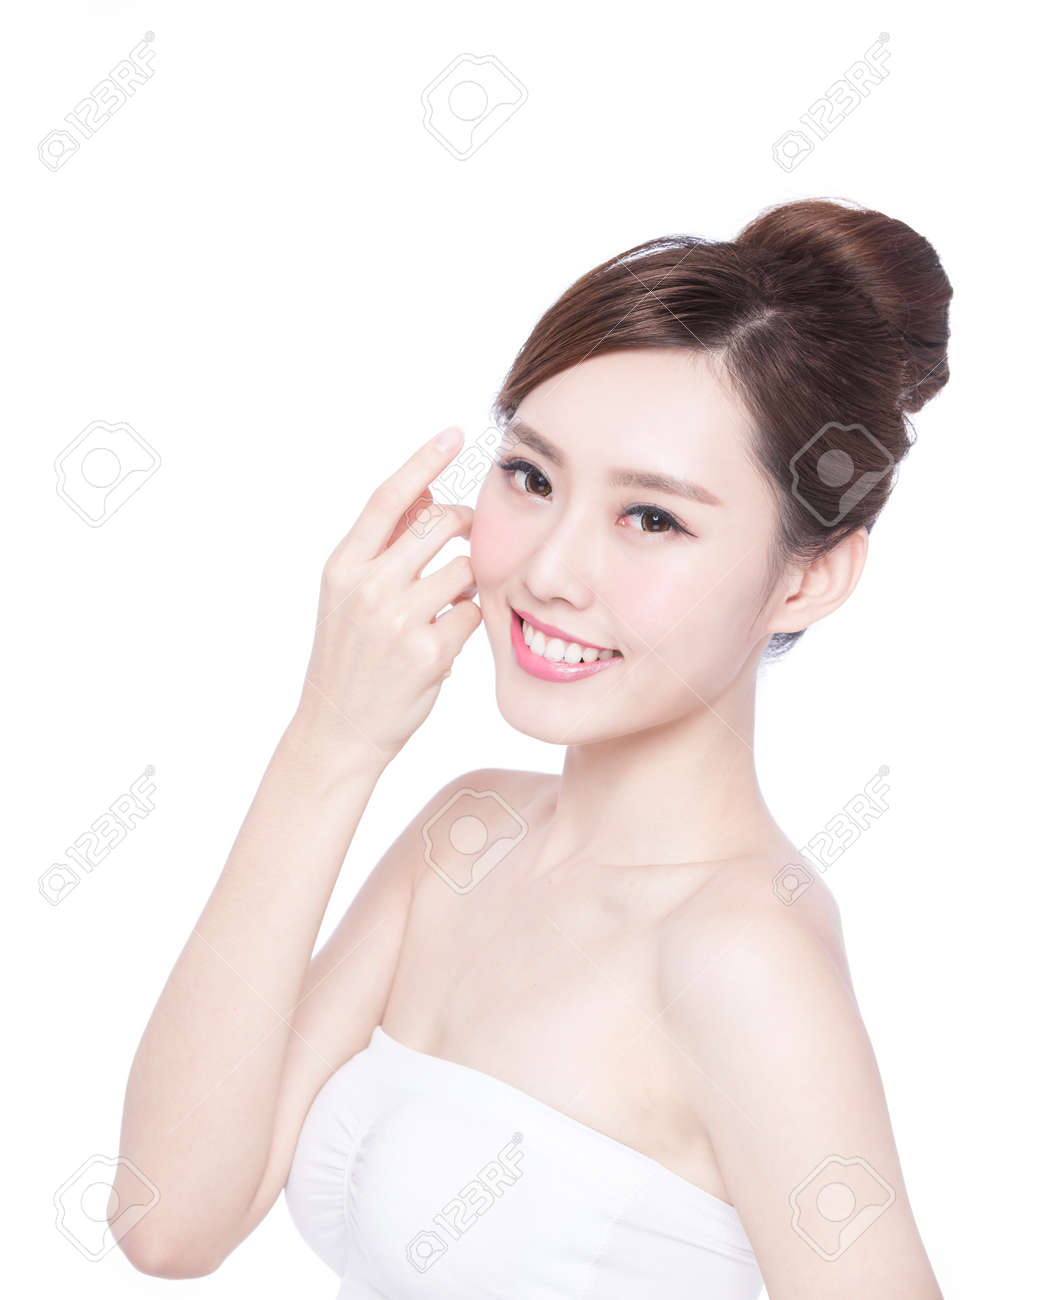 Beautiful Skin care woman Face smile to you isolated on white background. asian Beauty Stock Photo - 50279635